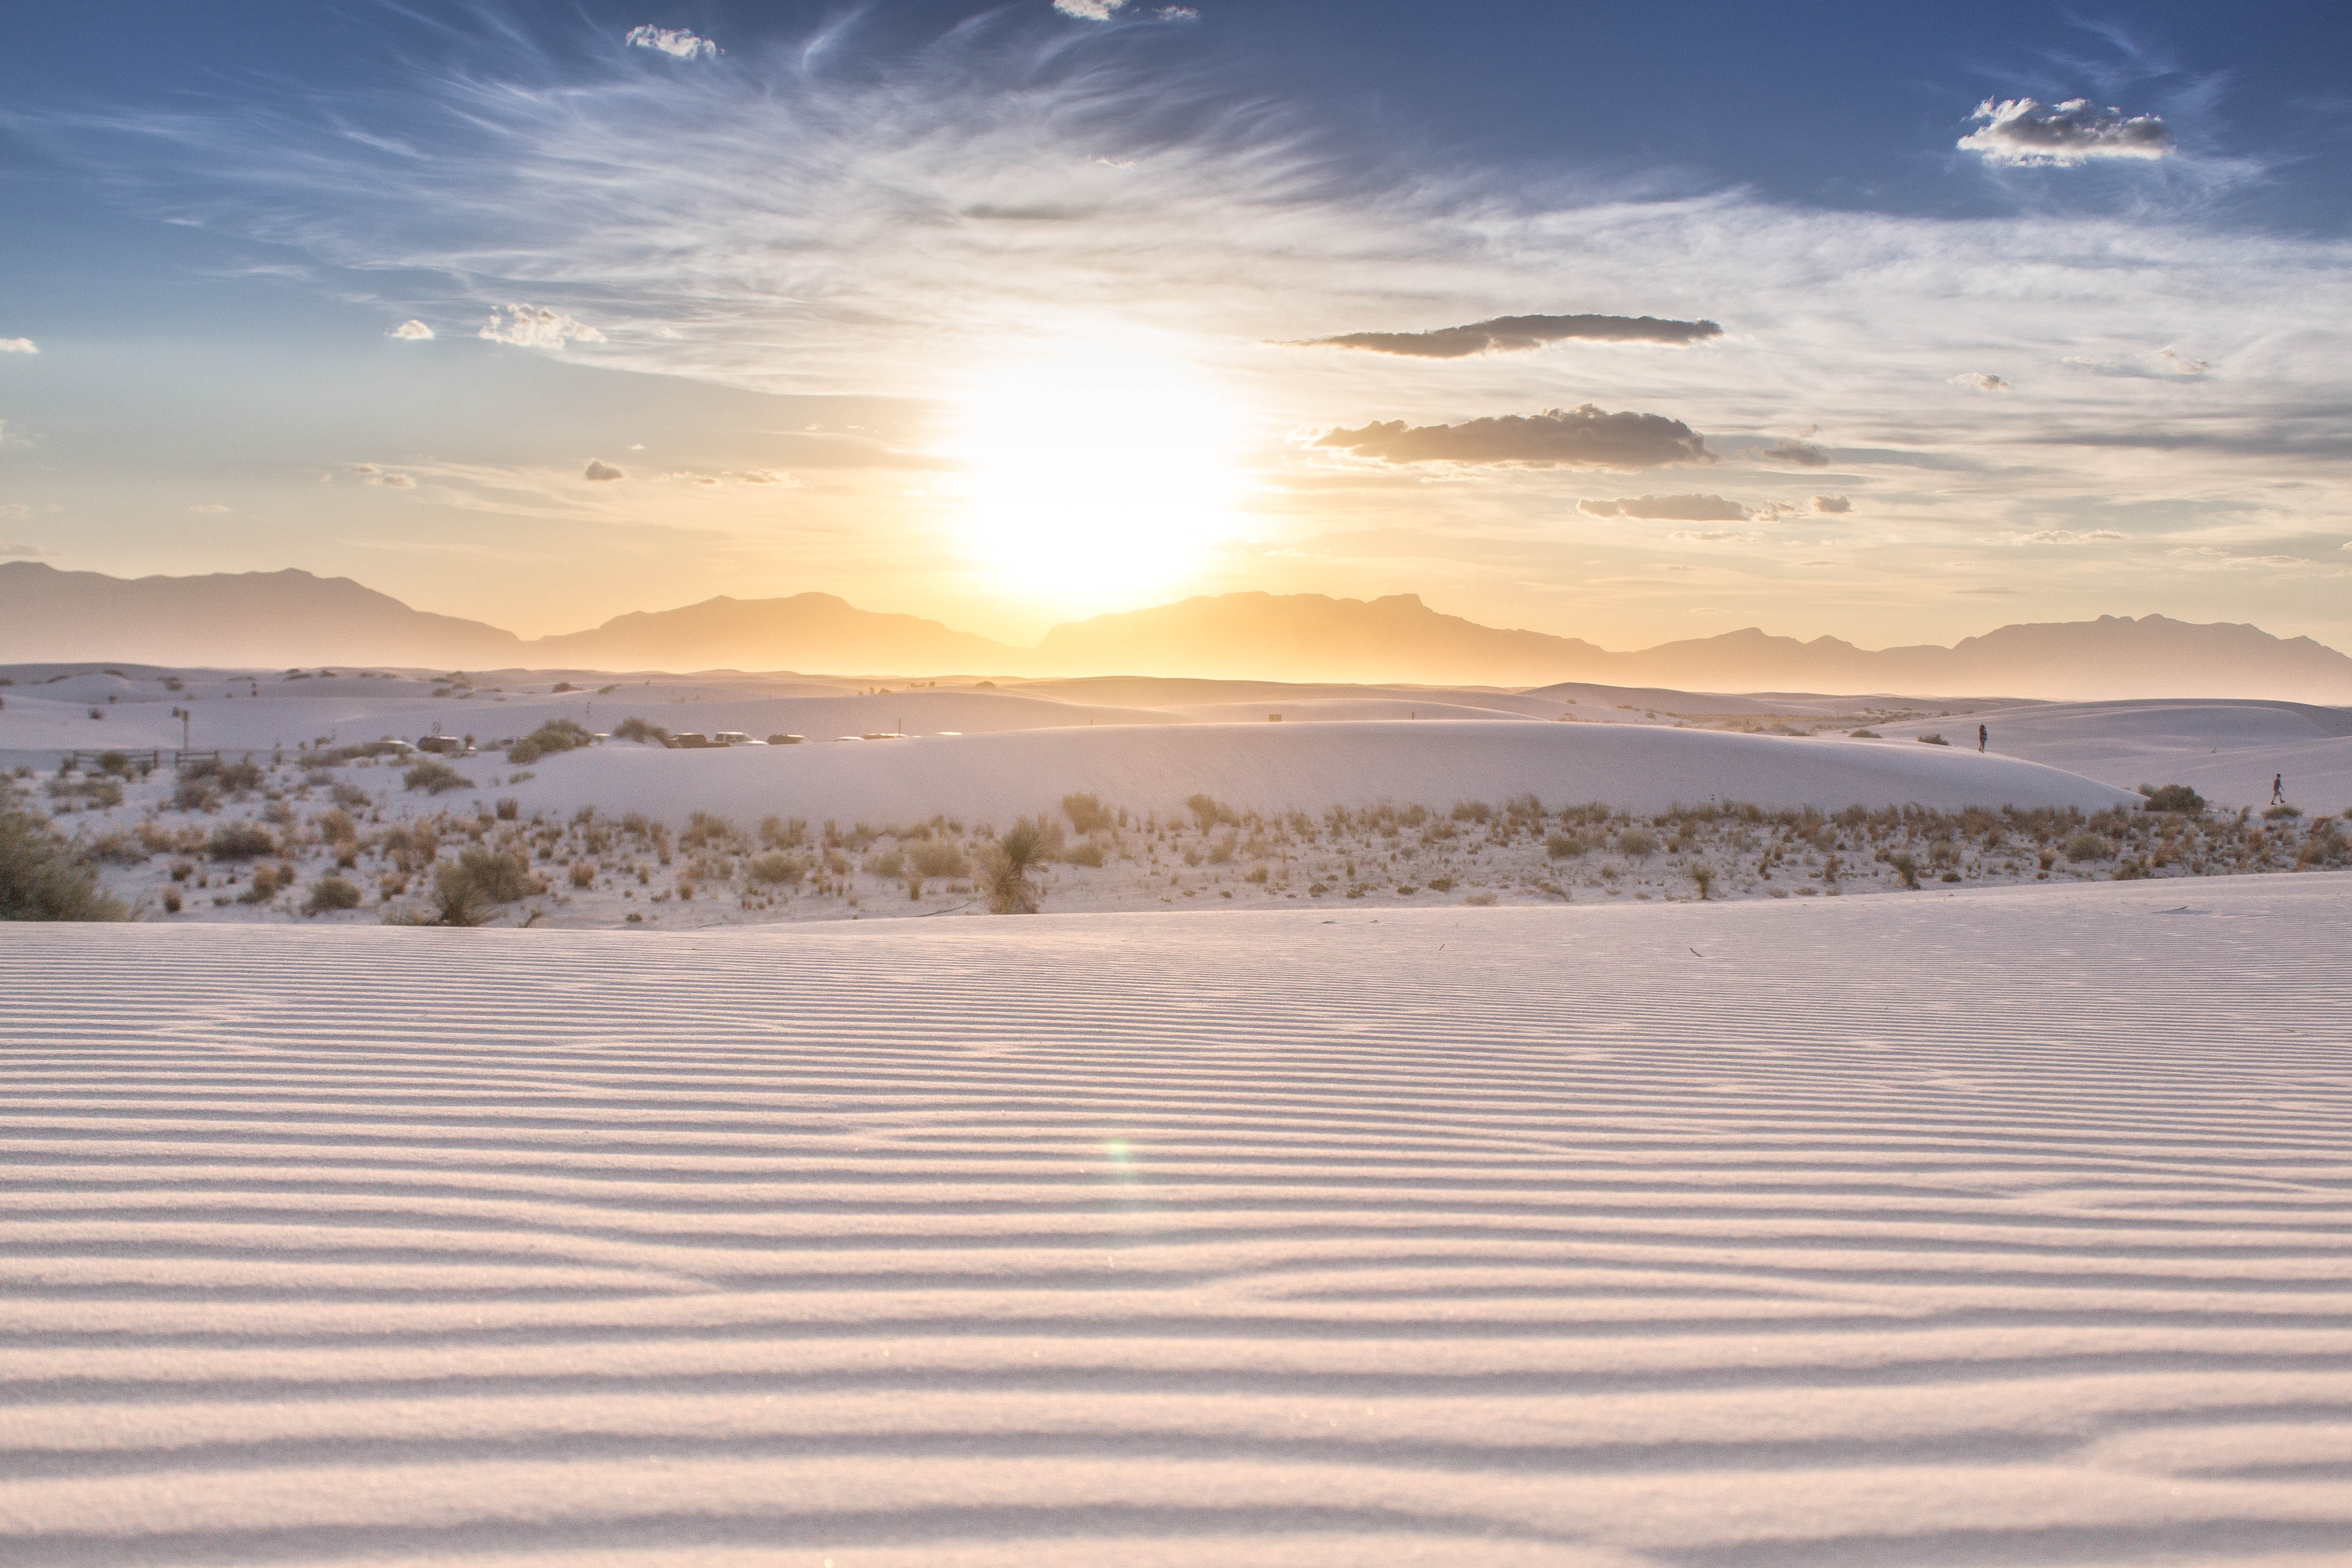 Parc national de White Sands